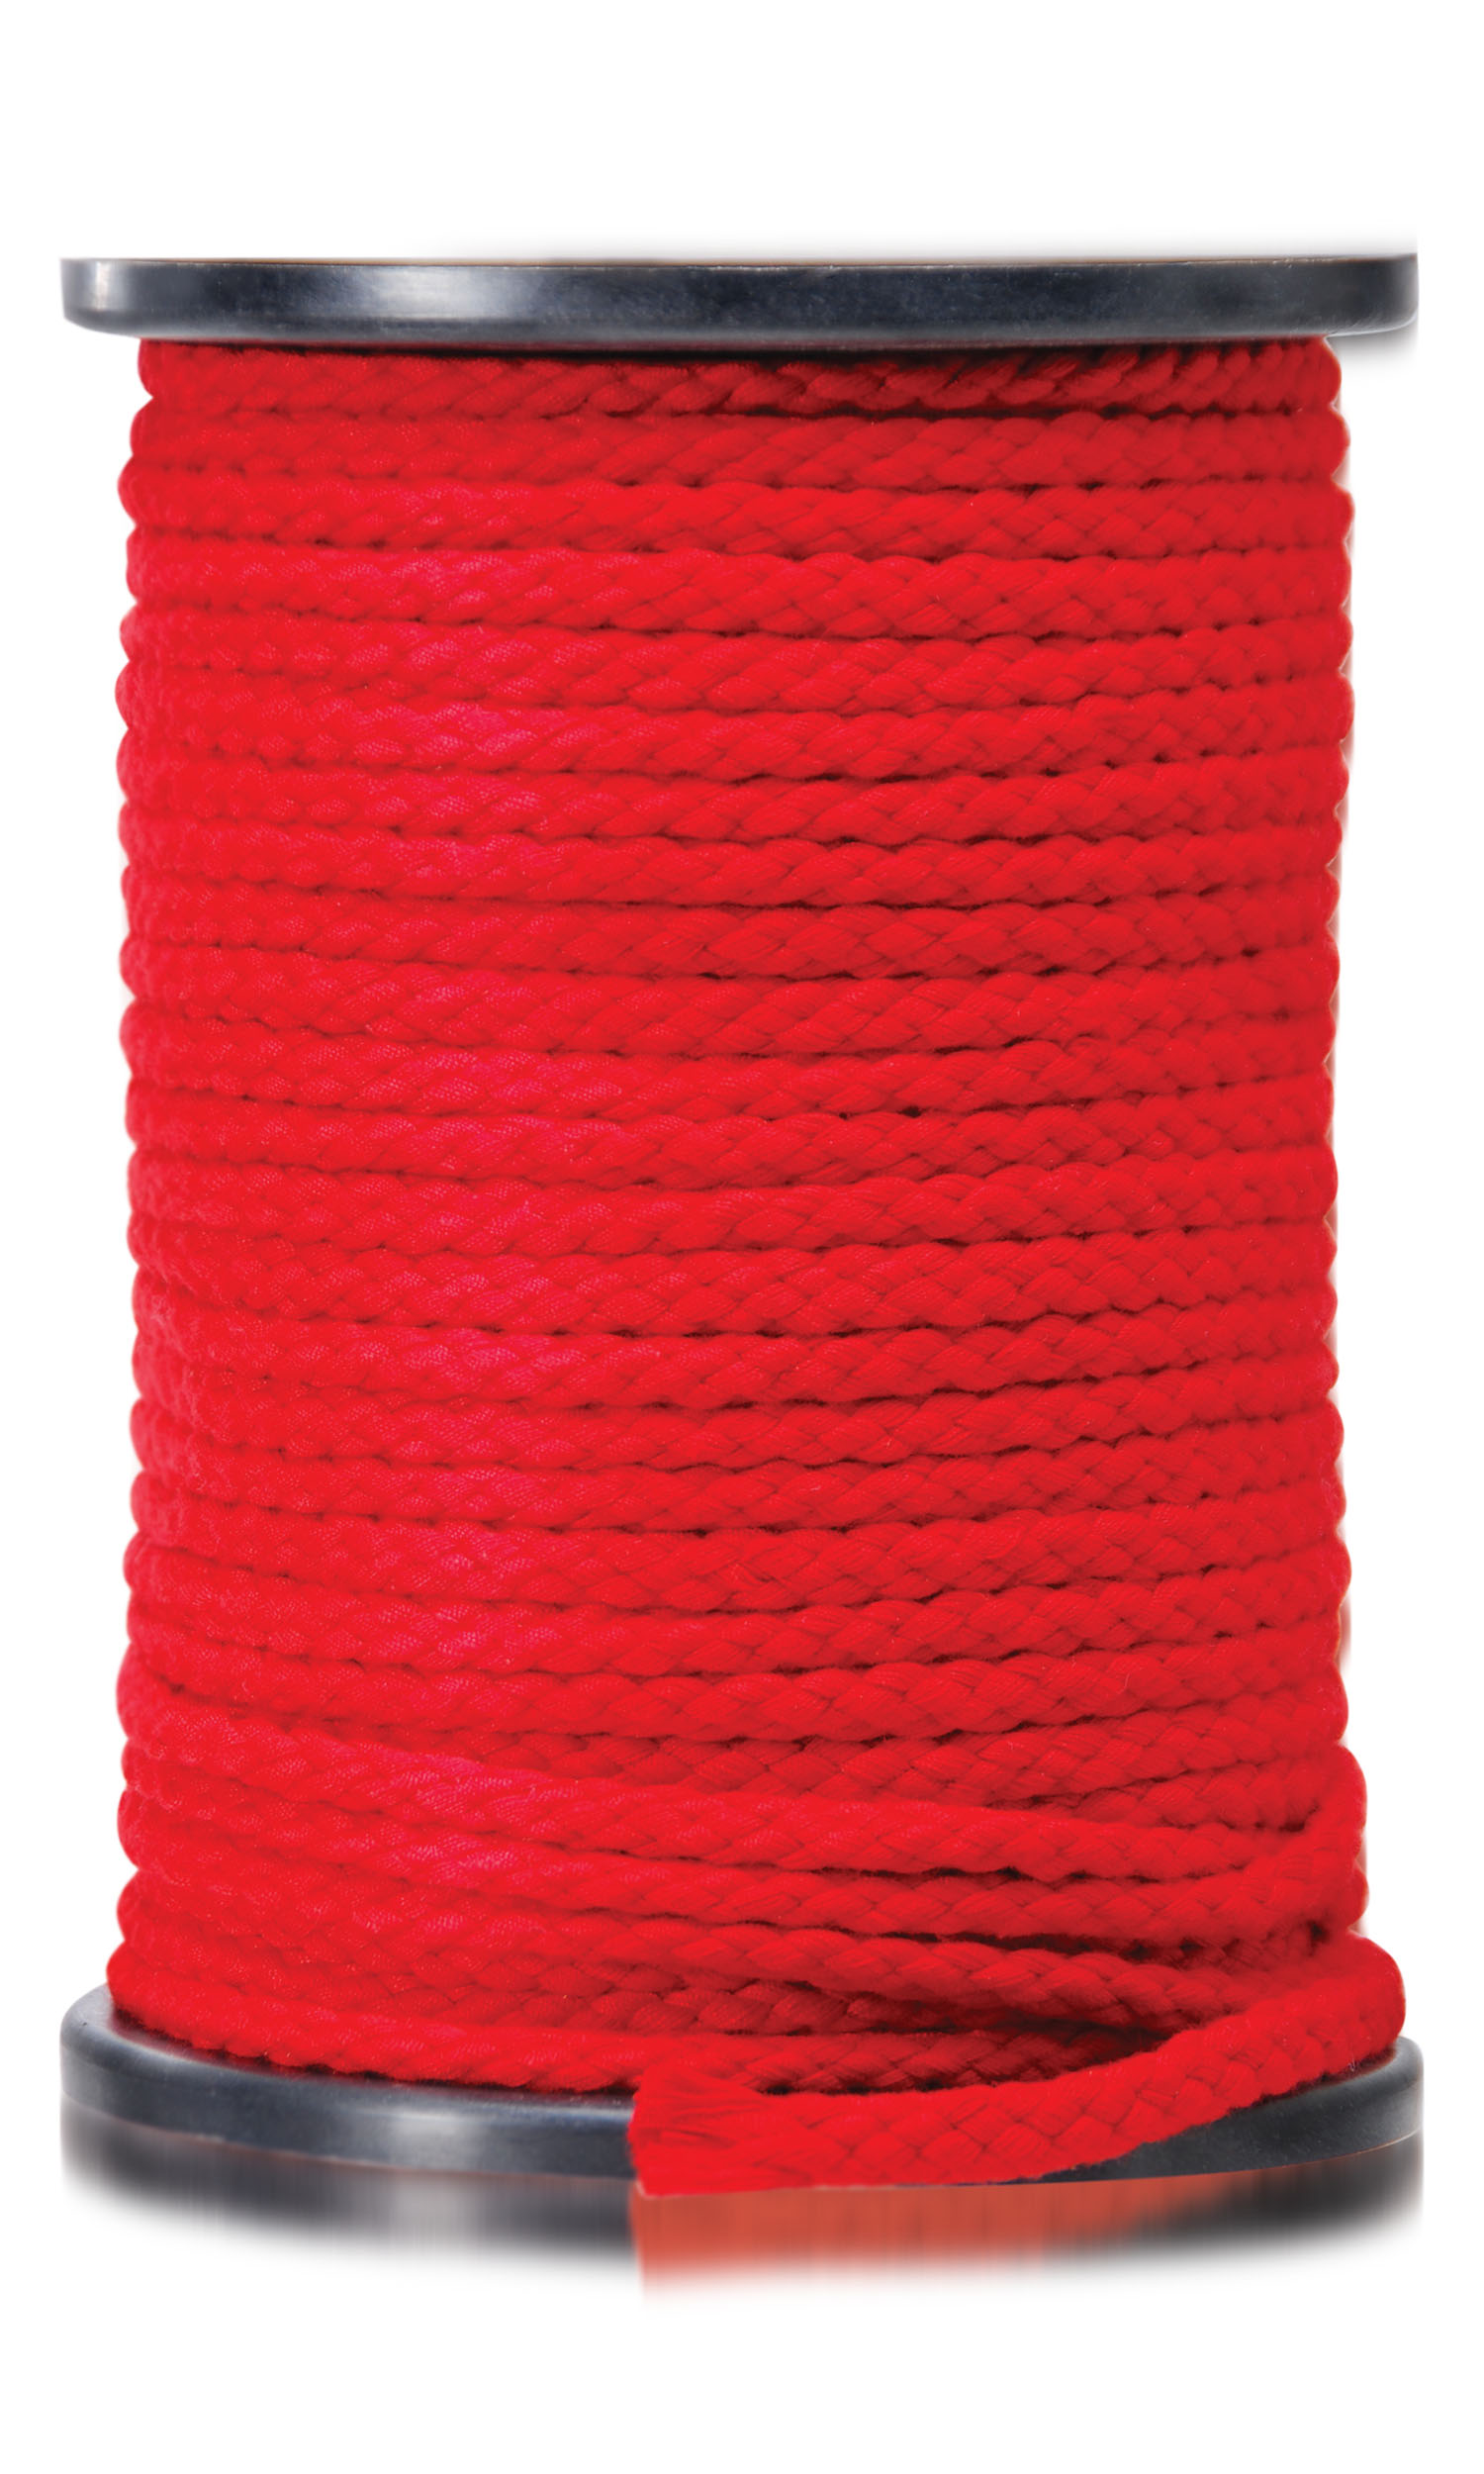 FETISH FANTASY BONDAGE ROPE RED 200 FEET